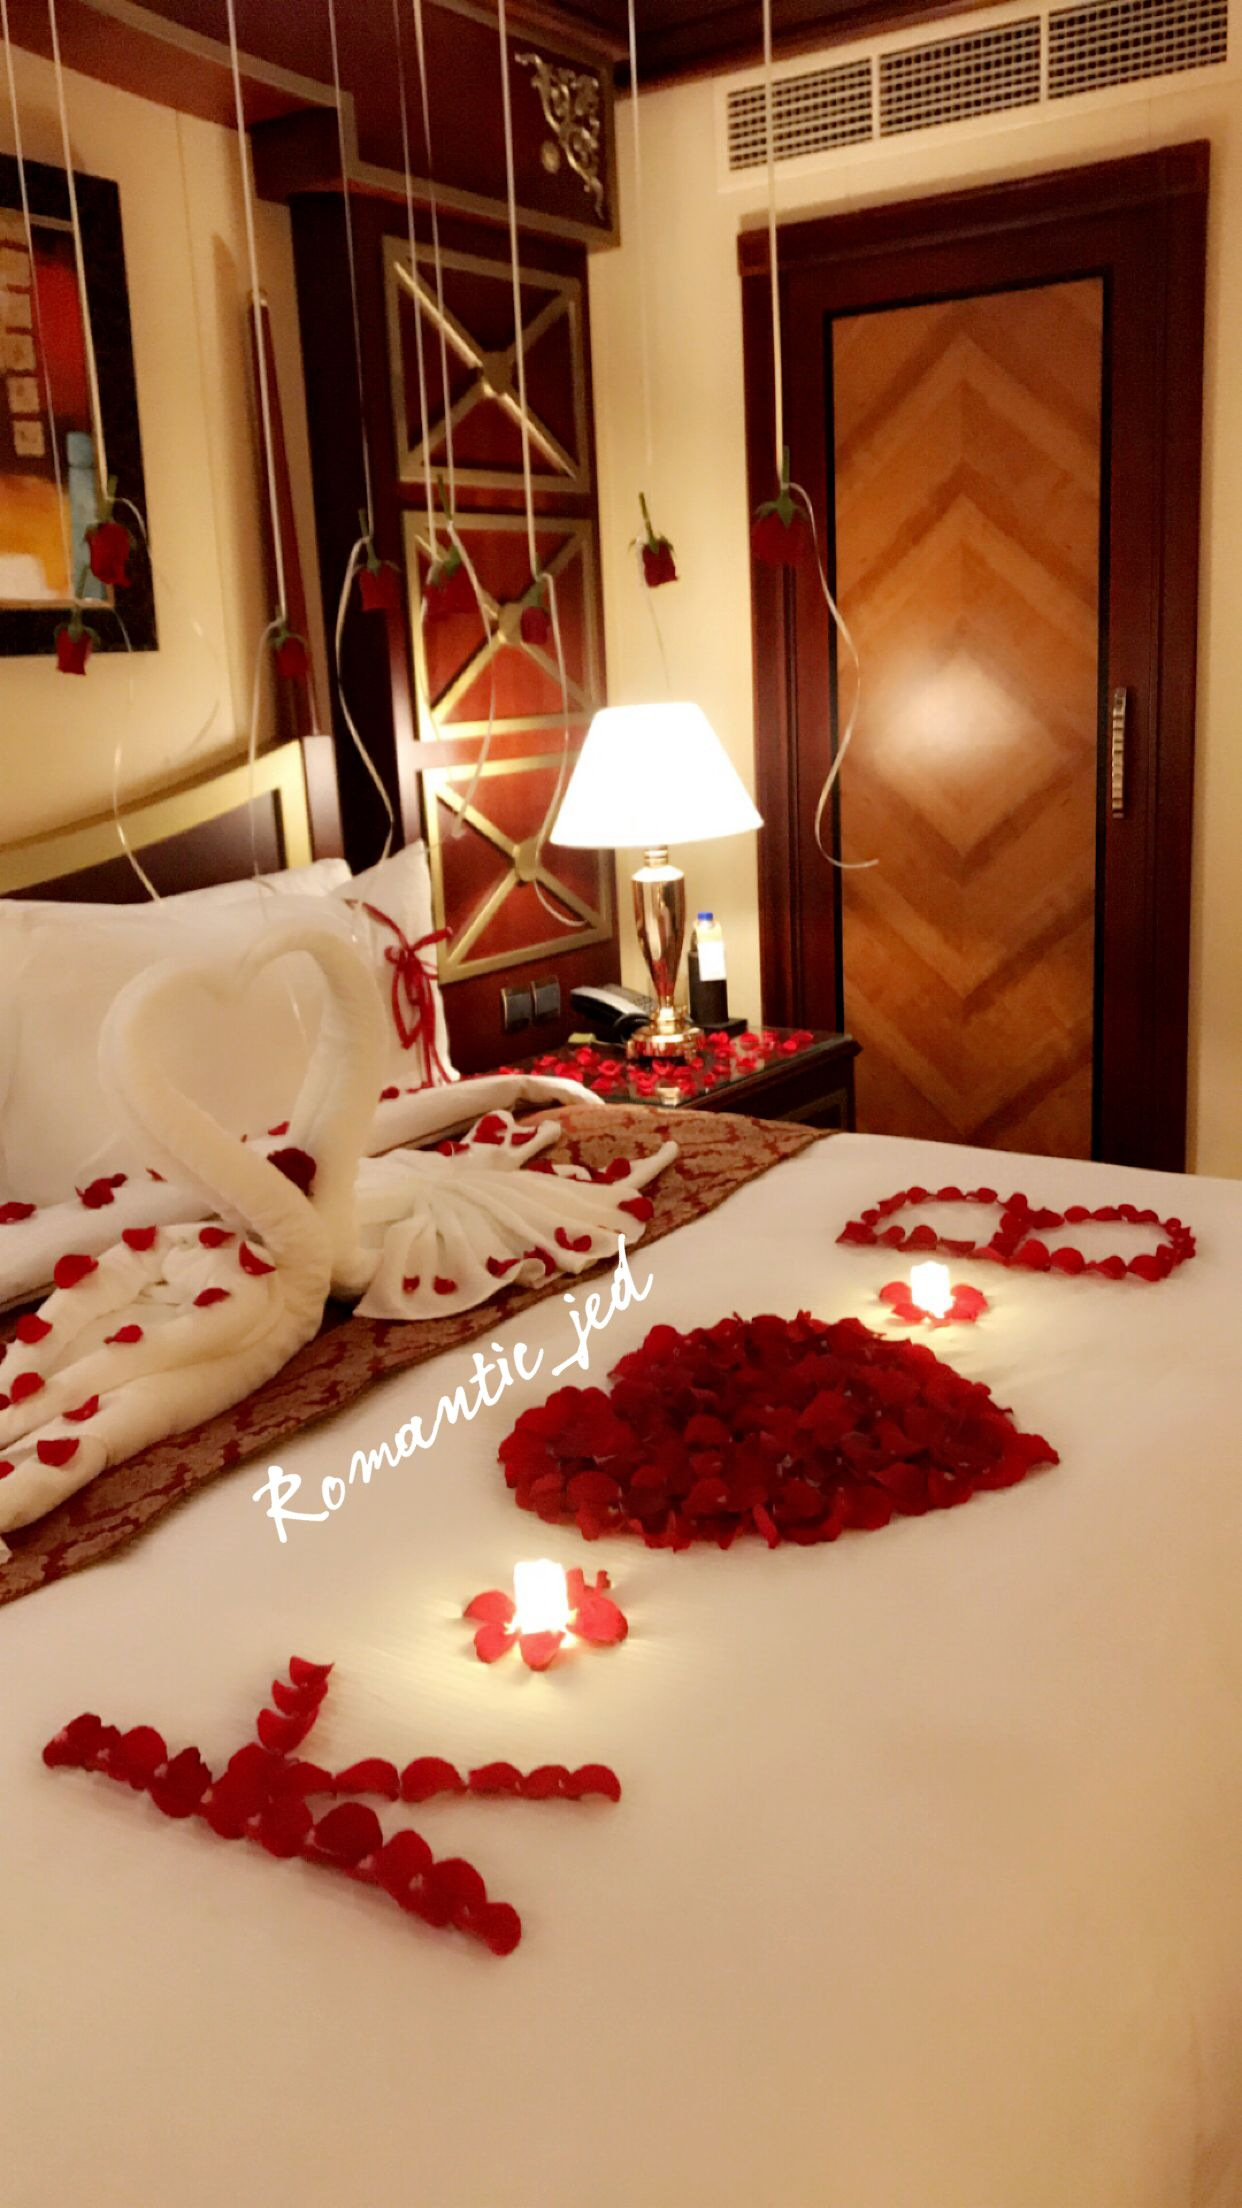 Pin By Goma Tchibinda On رومانسيات زوجية Romantic Decor Romantic Room Decoration Valentine Bedroom Decor